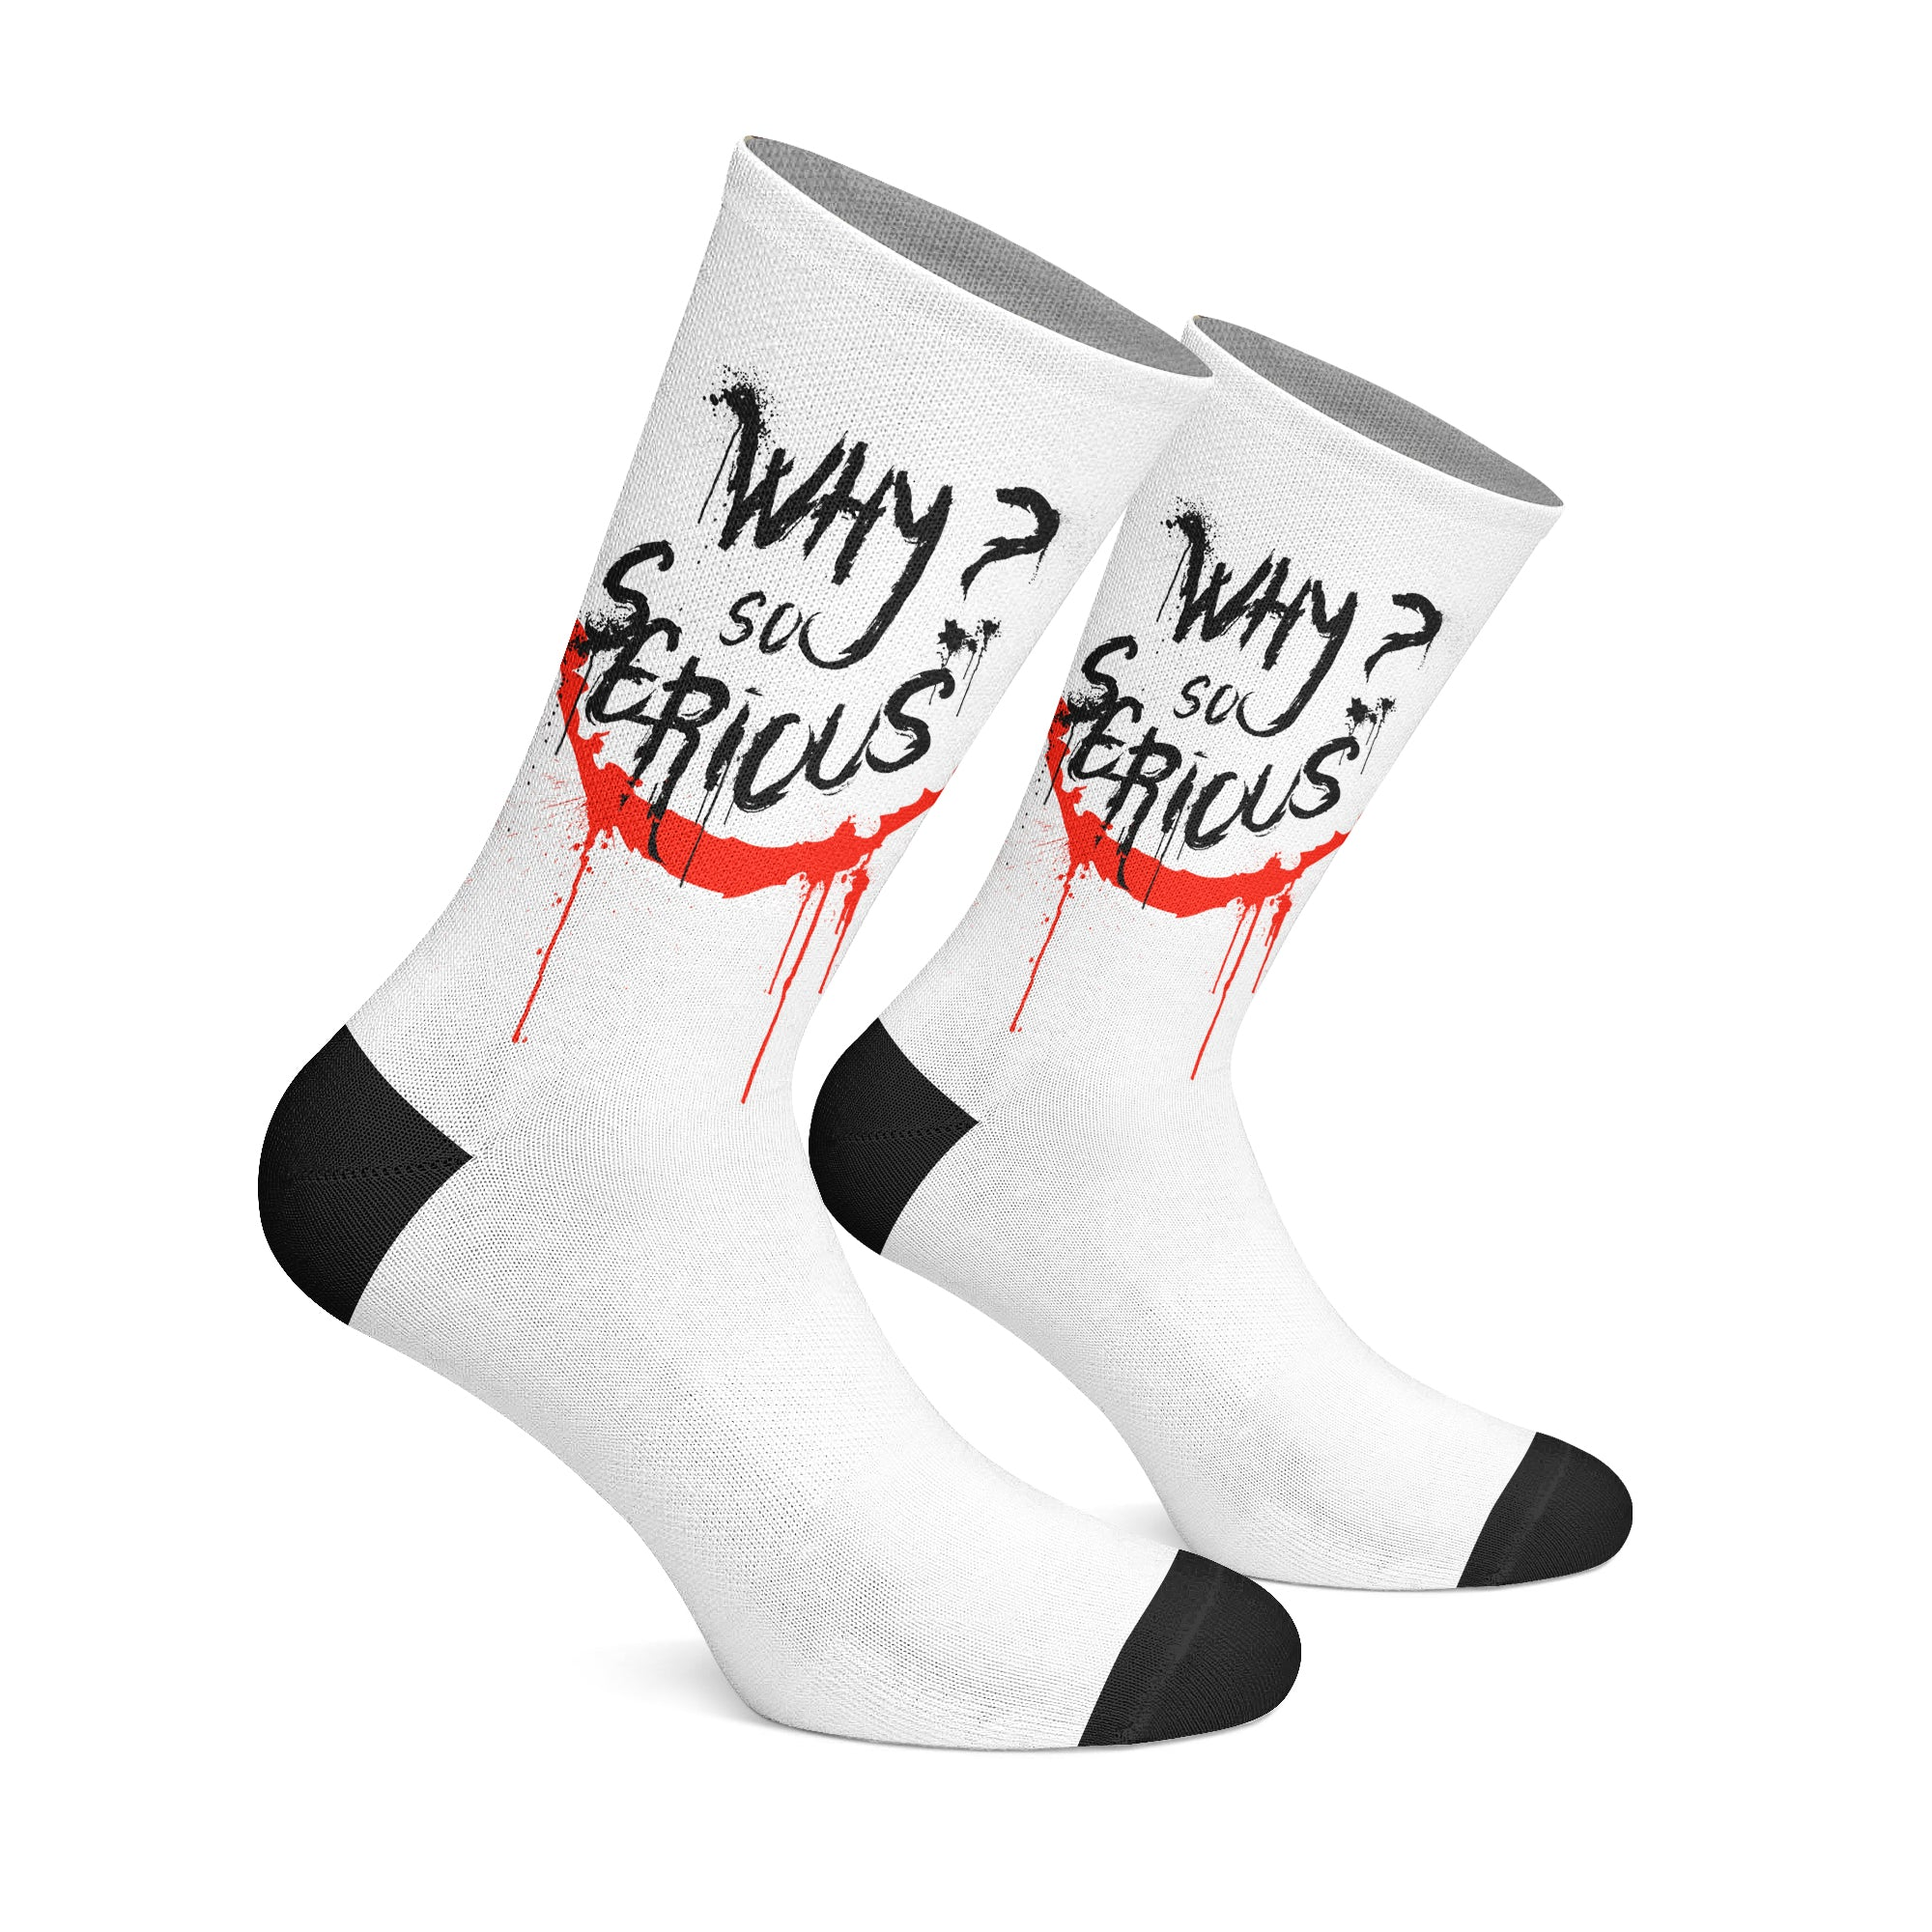 Why So Serious - Socks